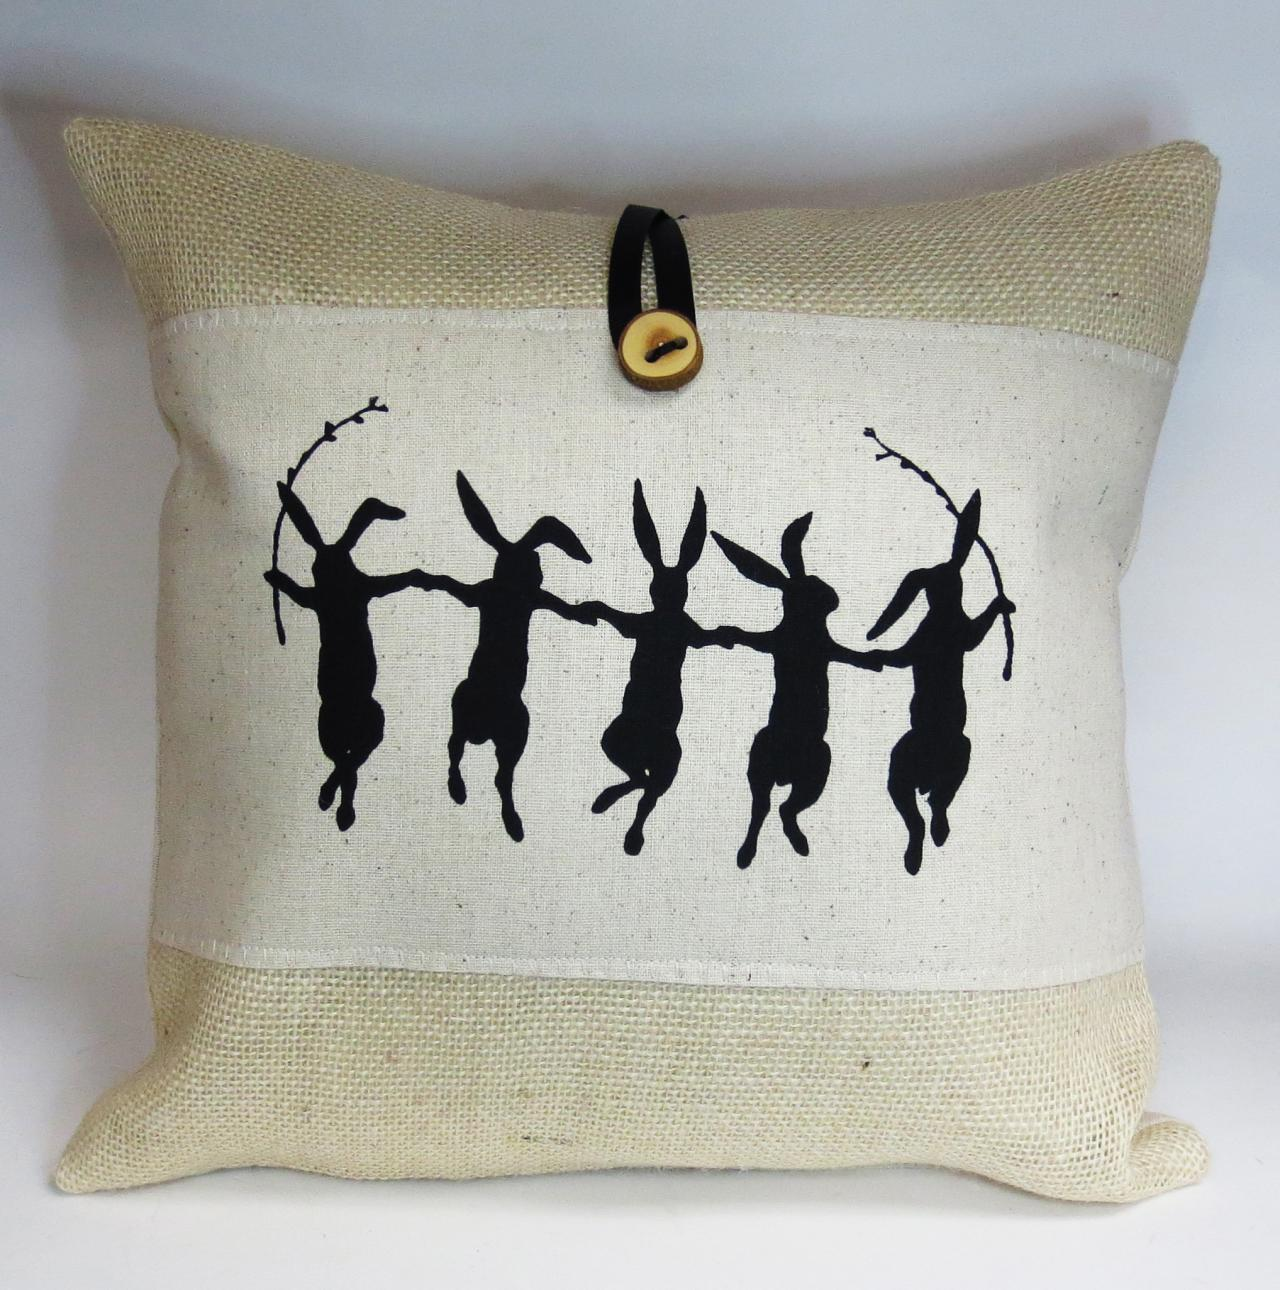 Burlap throw pillow with rabbit hare screen print design